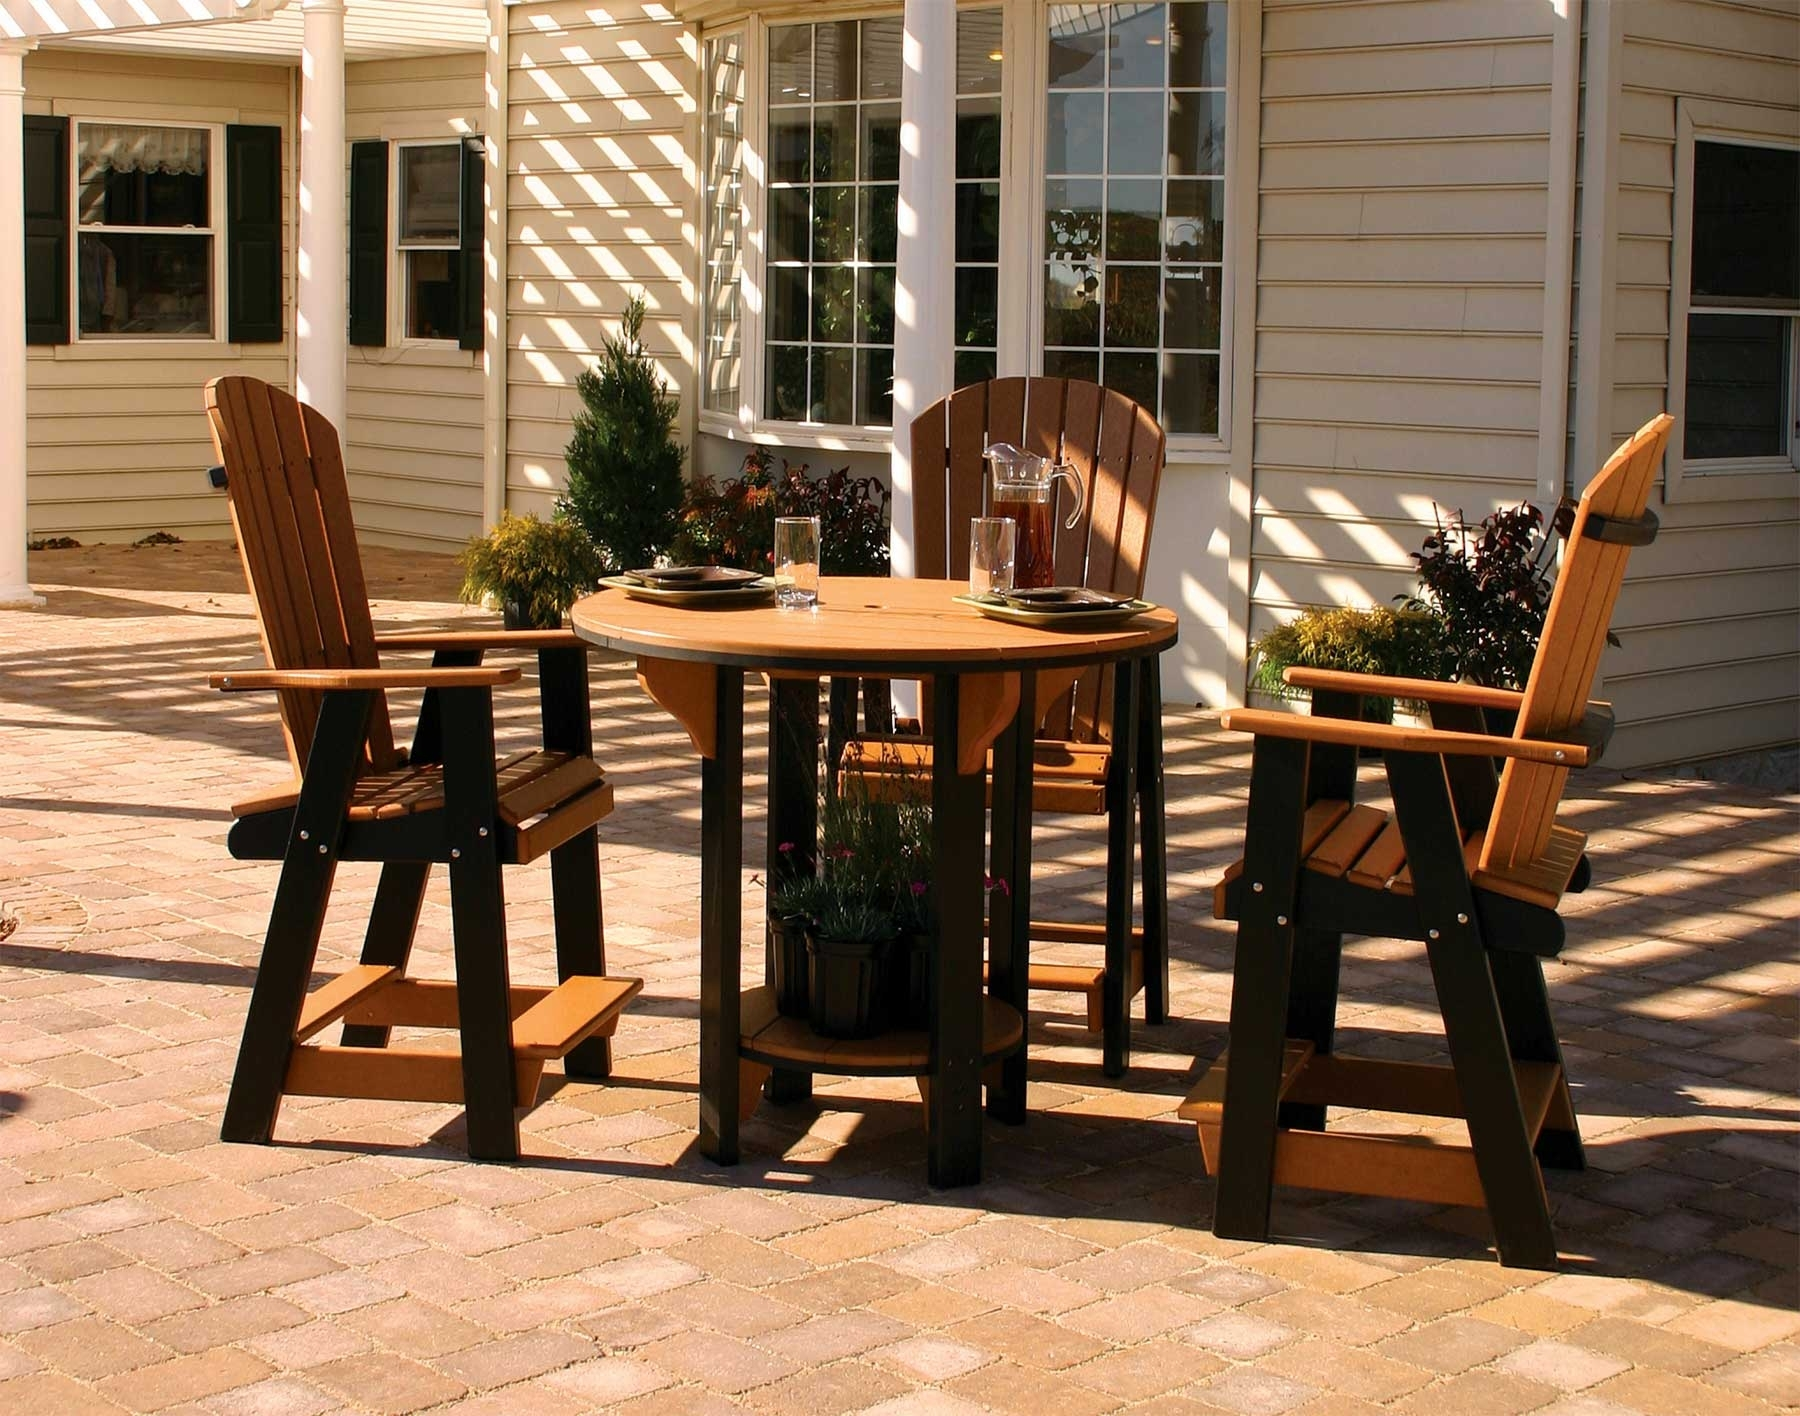 Inspiration about Green Cedar Dining Chairs Intended For Most Up To Date Poly Lumber Pub Table W/3 Balcony Chairs (#12 of 20)